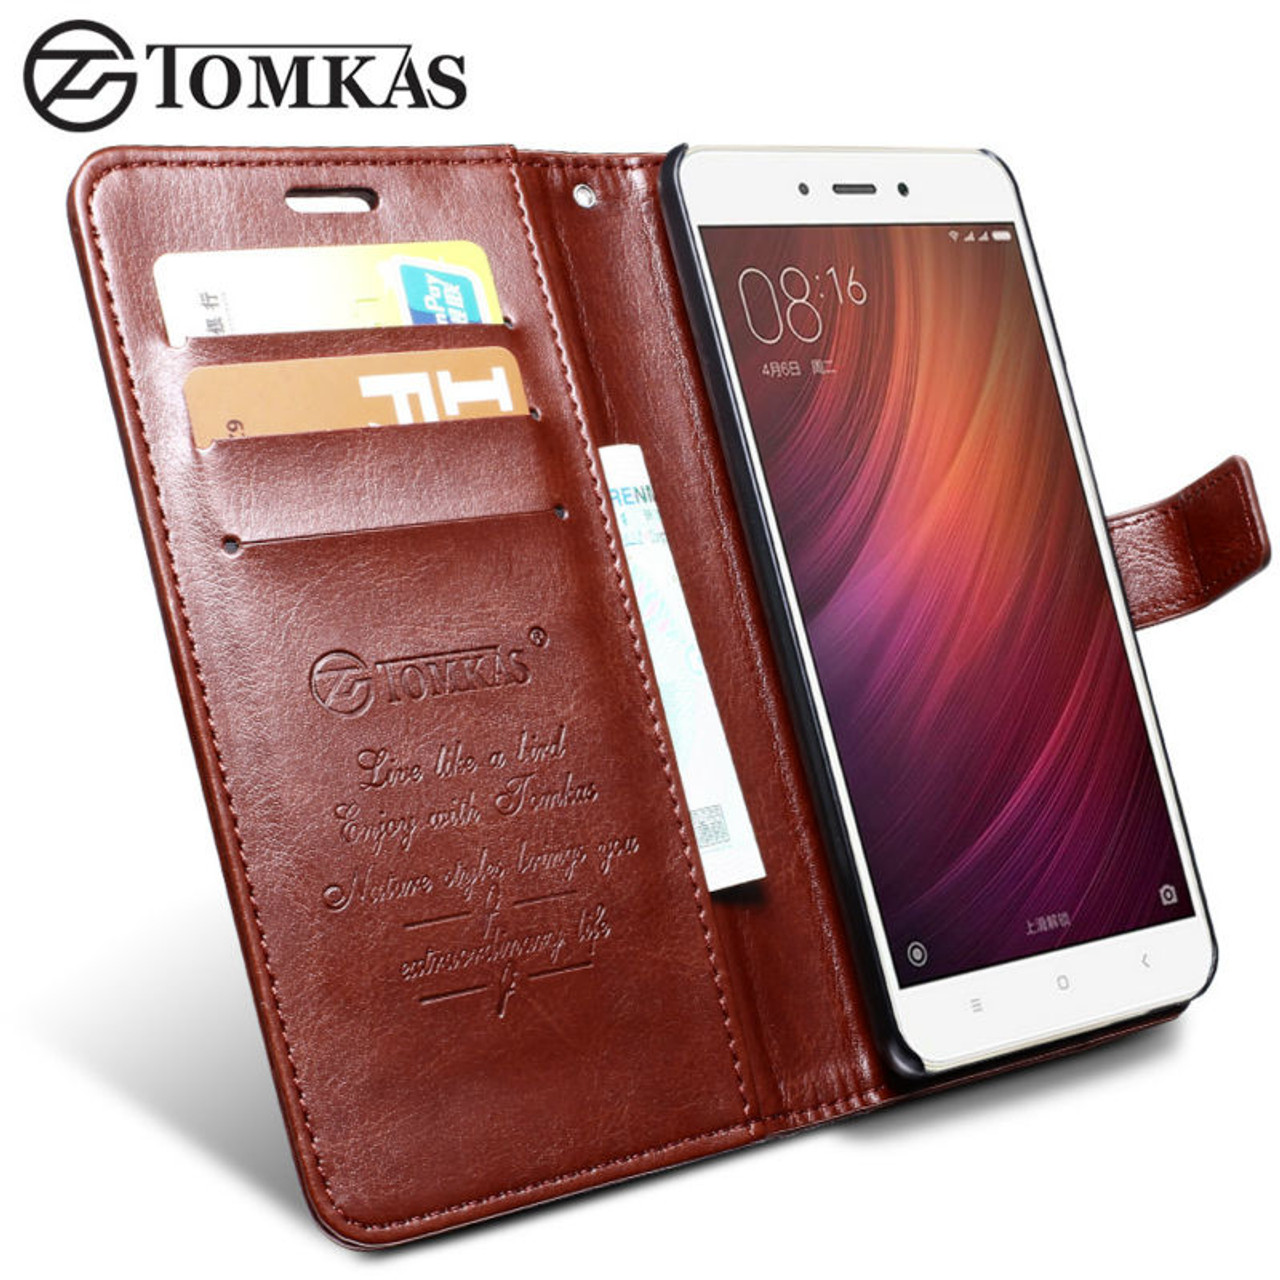 huge selection of b2fa8 e8d83 Xiaomi Redmi Note 4 Case Cover TOMKAS Original Leather Phone Bag Cover Flip  Wallet Coque Case For Xiaomi Redmi Note 4 Prime